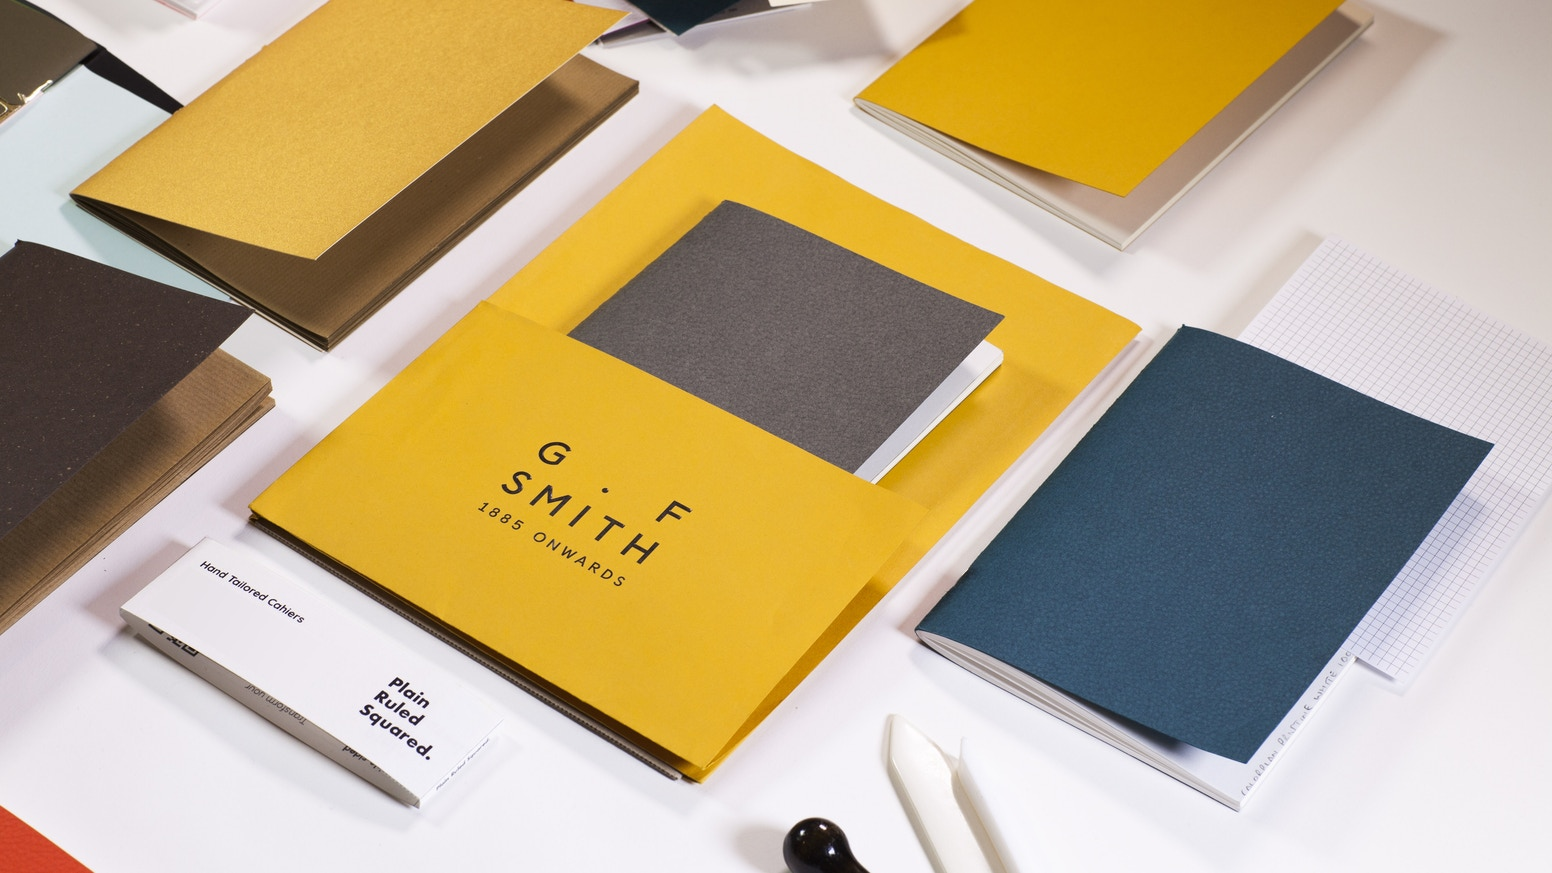 All-in one homemade notebook: blank pages that can be transformed into ruled or squared ones on demand.